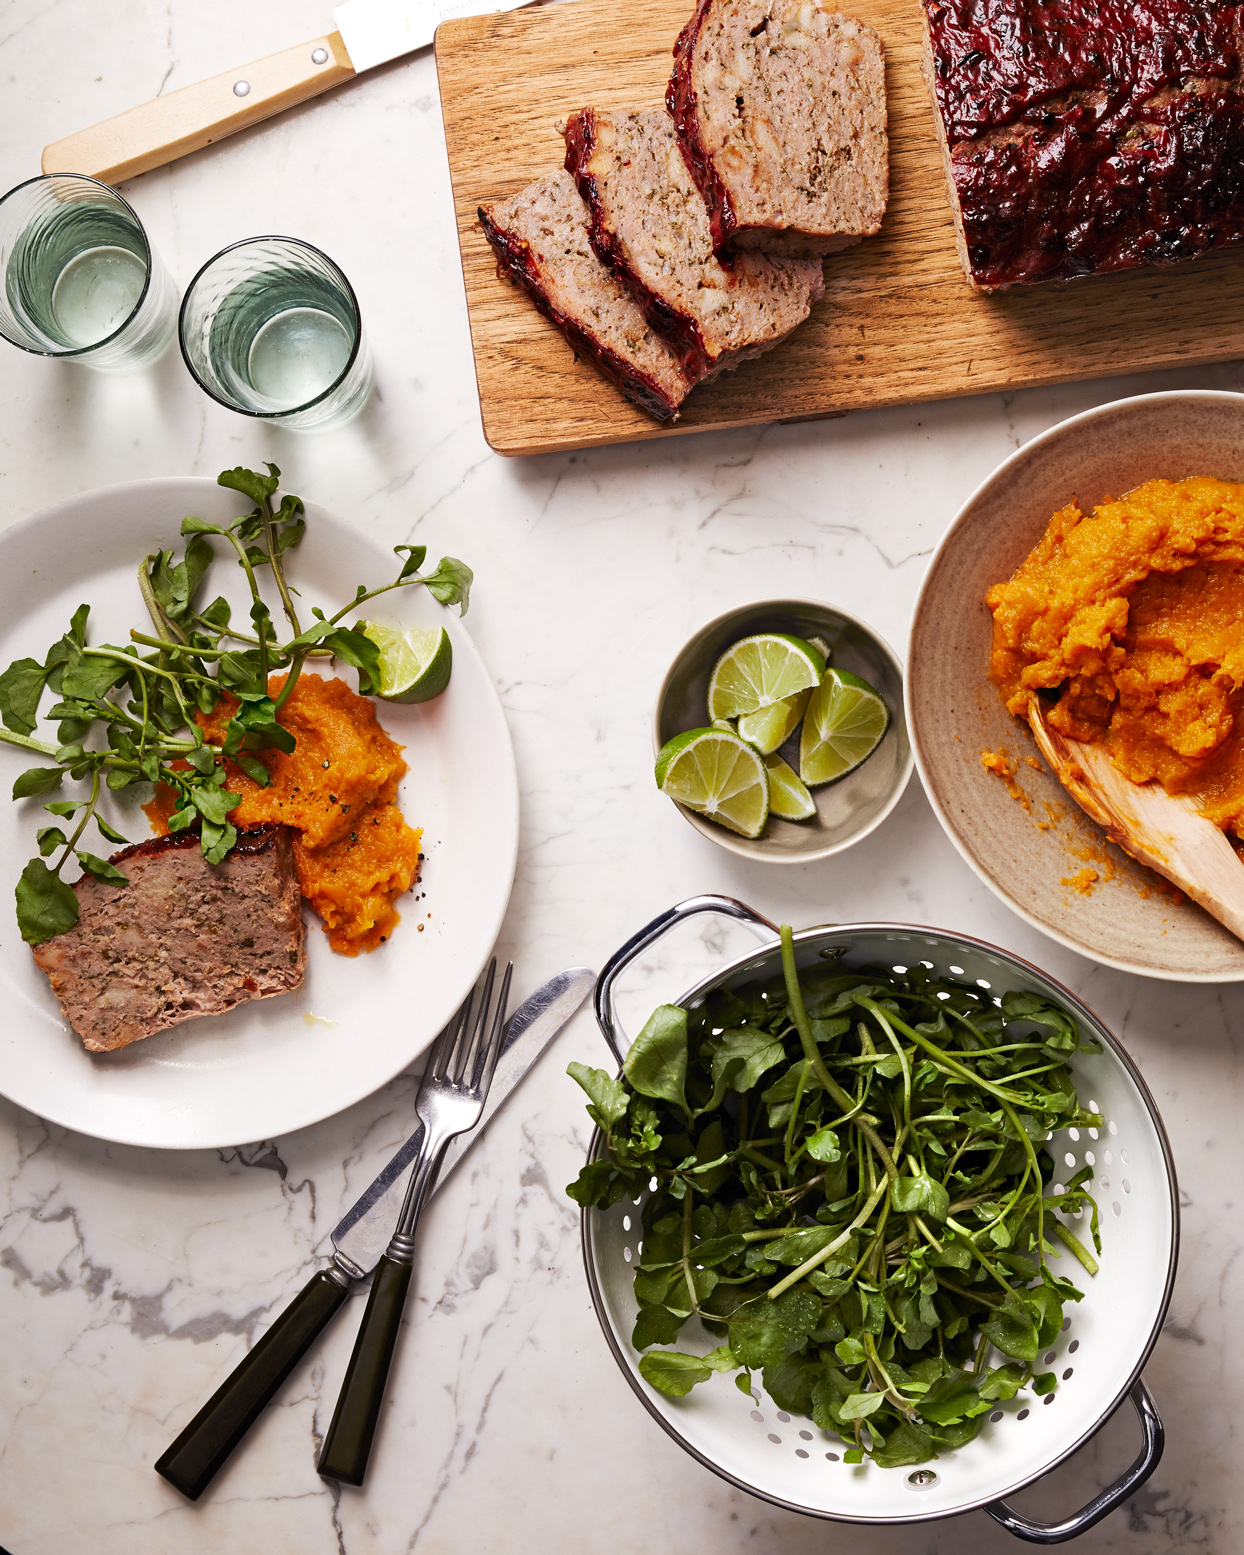 meatloaf, mashed sweet potatoes, and greens on white marble tabletop